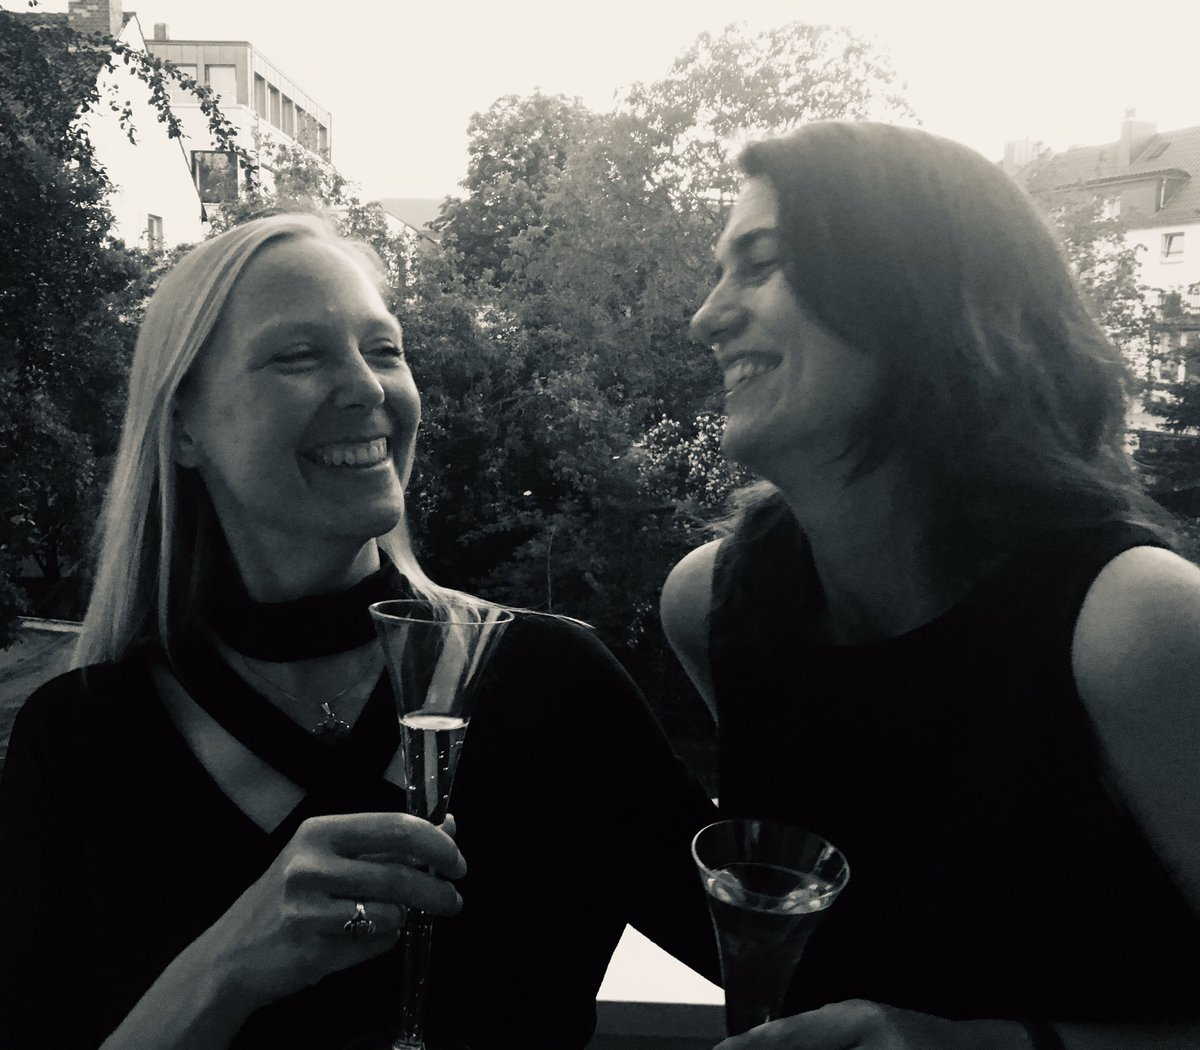 Through my work as a #scientist I got to know so many wonderful people - with one of them I am celebrating her birthday today. Cheers to Gisa Gerold @GeroldLab and thank you for being such a great colleague and true friend. #lovevirology #WomenInSTEM